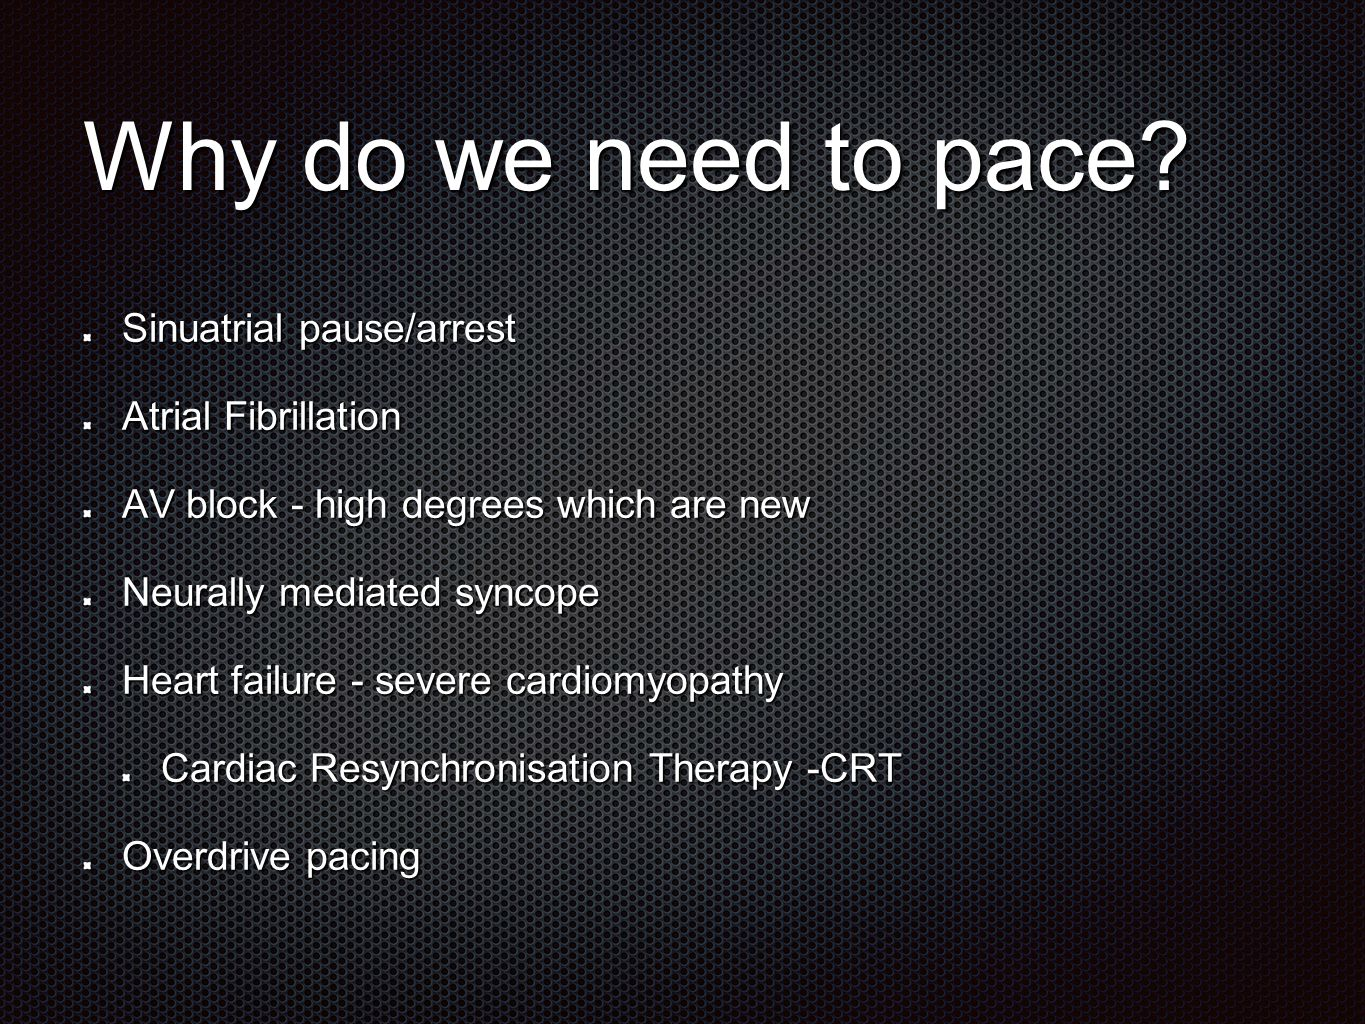 Why do we need to pace? Sinuatrial pause/arrest Atrial Fibrillation AV block - high degrees which are new Neurally mediated syncope Heart failure - se